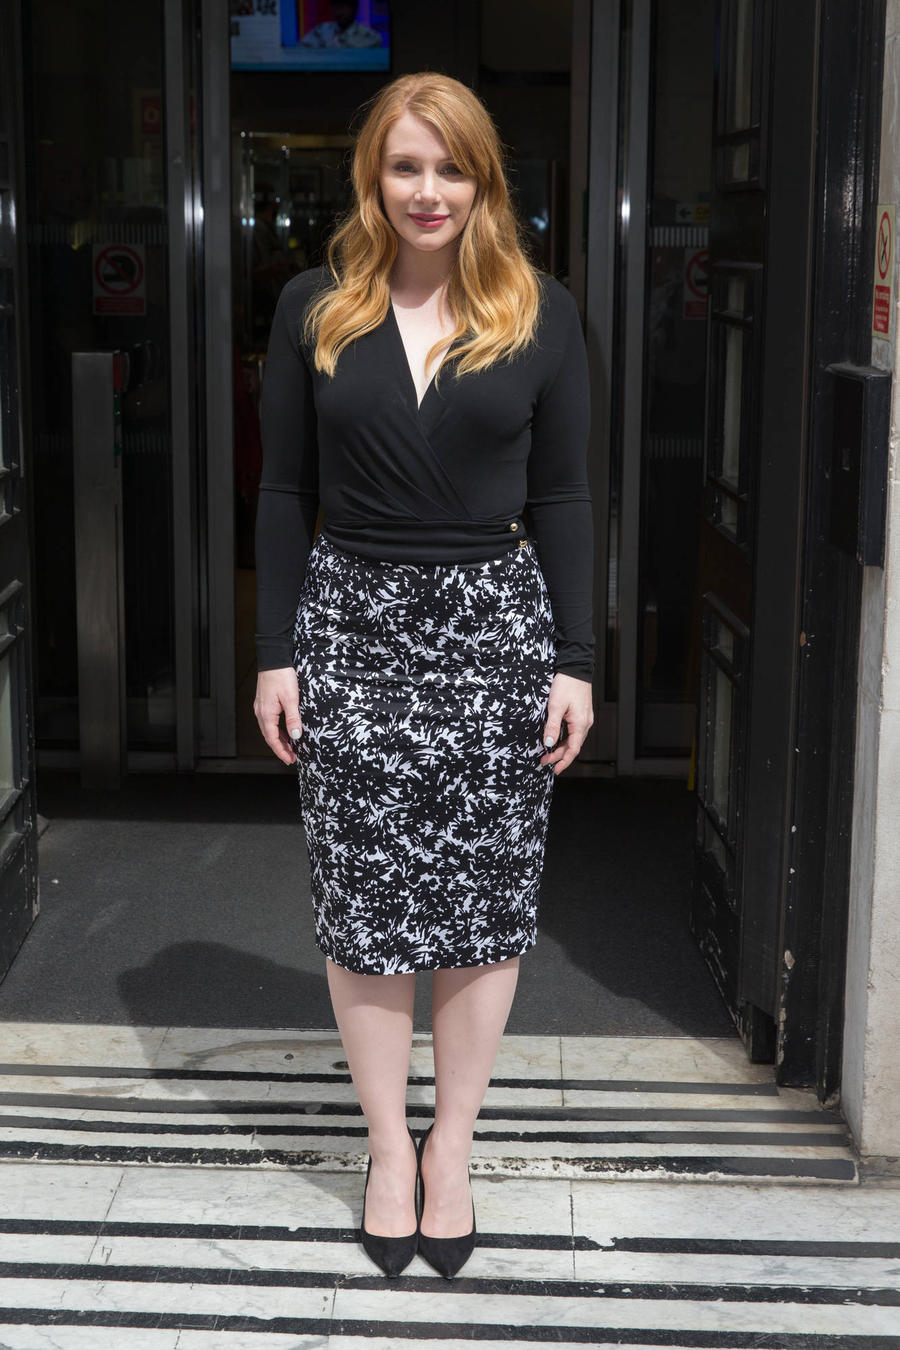 Bryce Dallas Howard: 'Directors Won't Ask Me To Lose Weight Again'